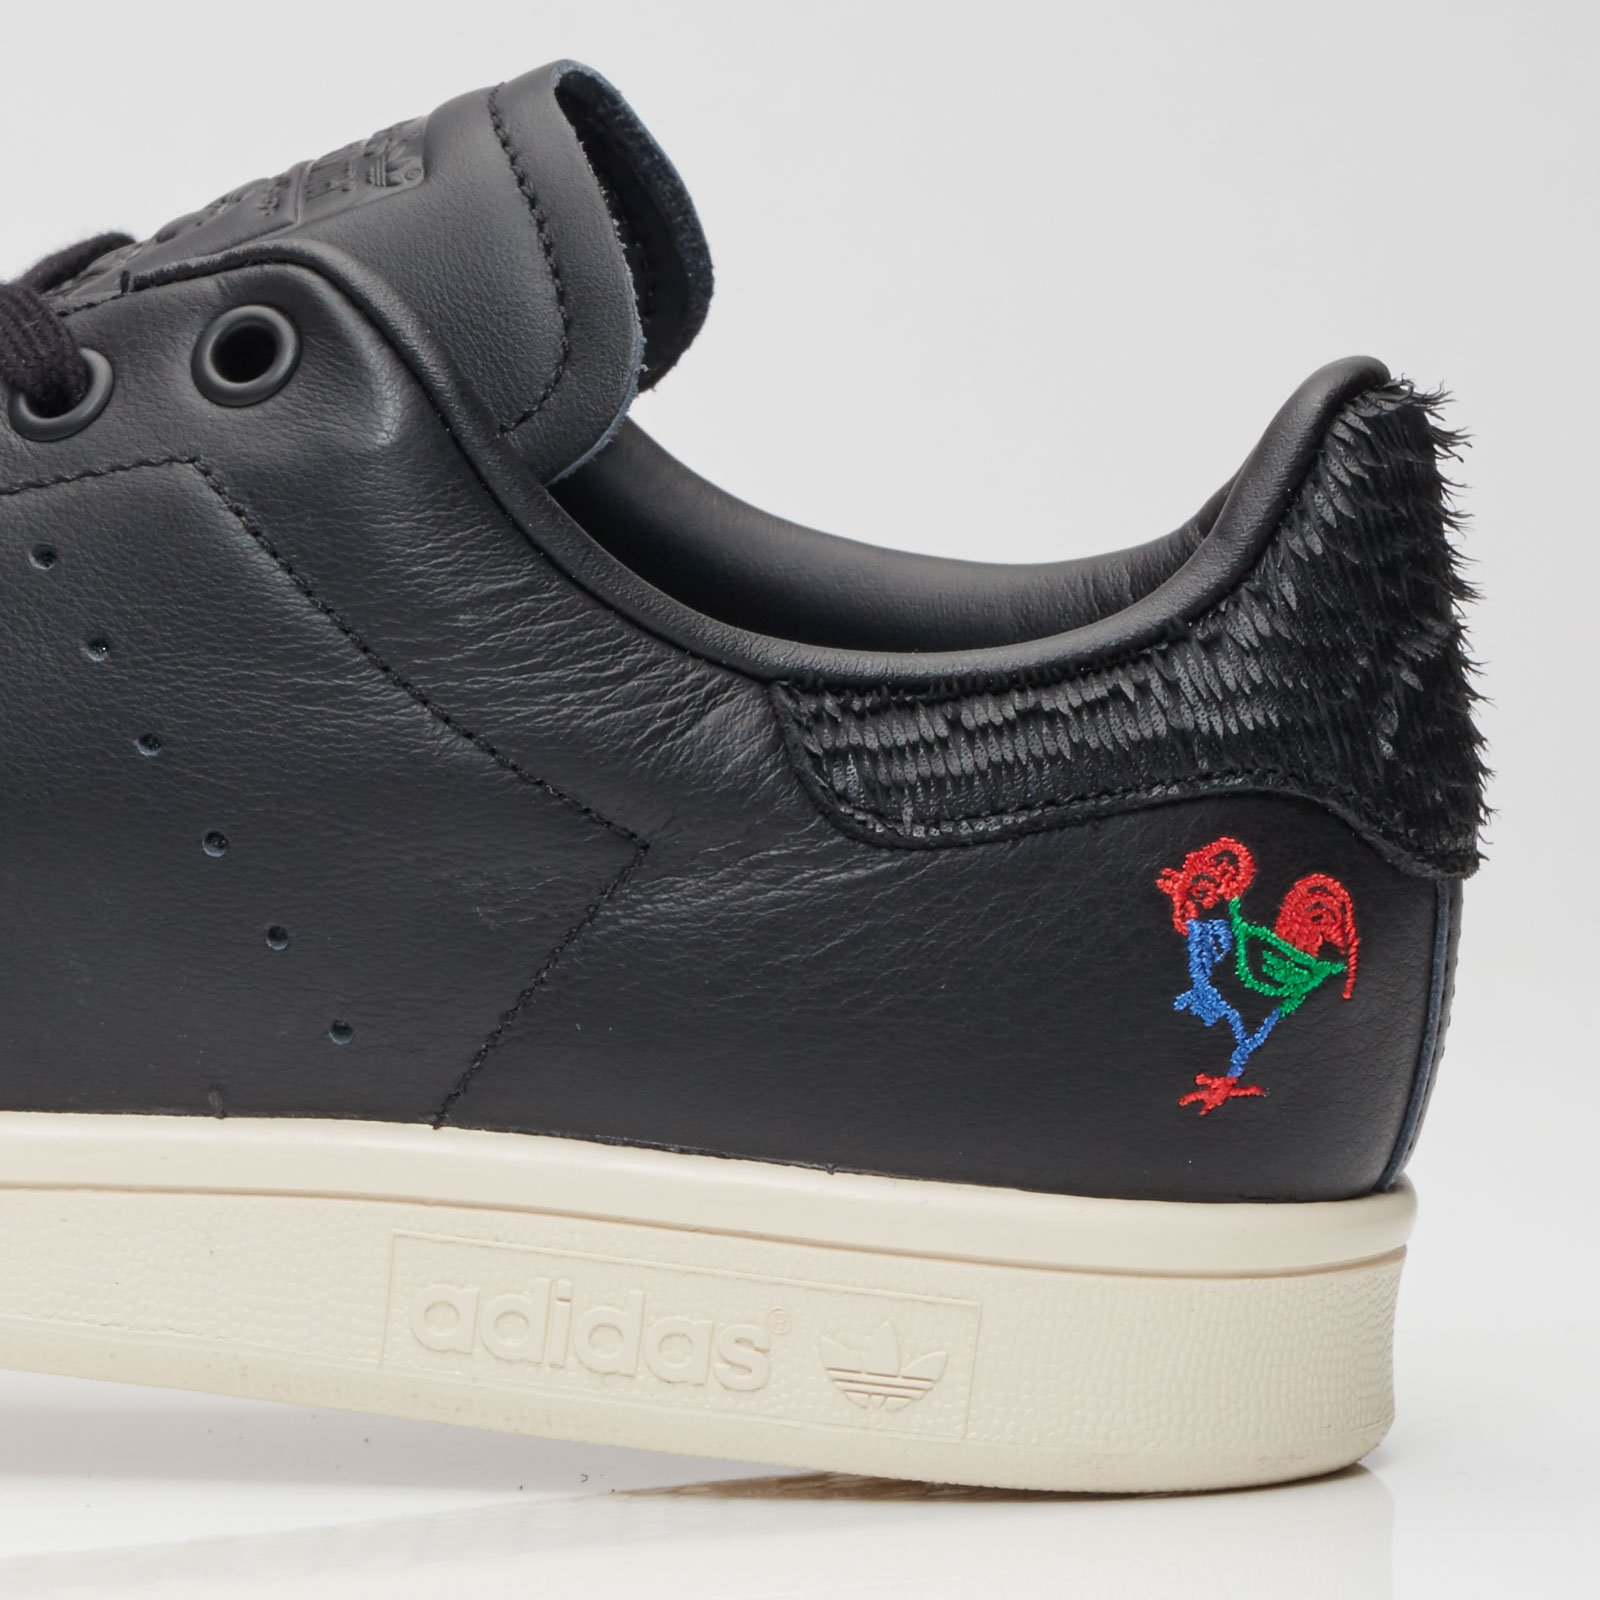 adidas Stan Smith Cny Ba7779 Sneakersnstuff | sneakers